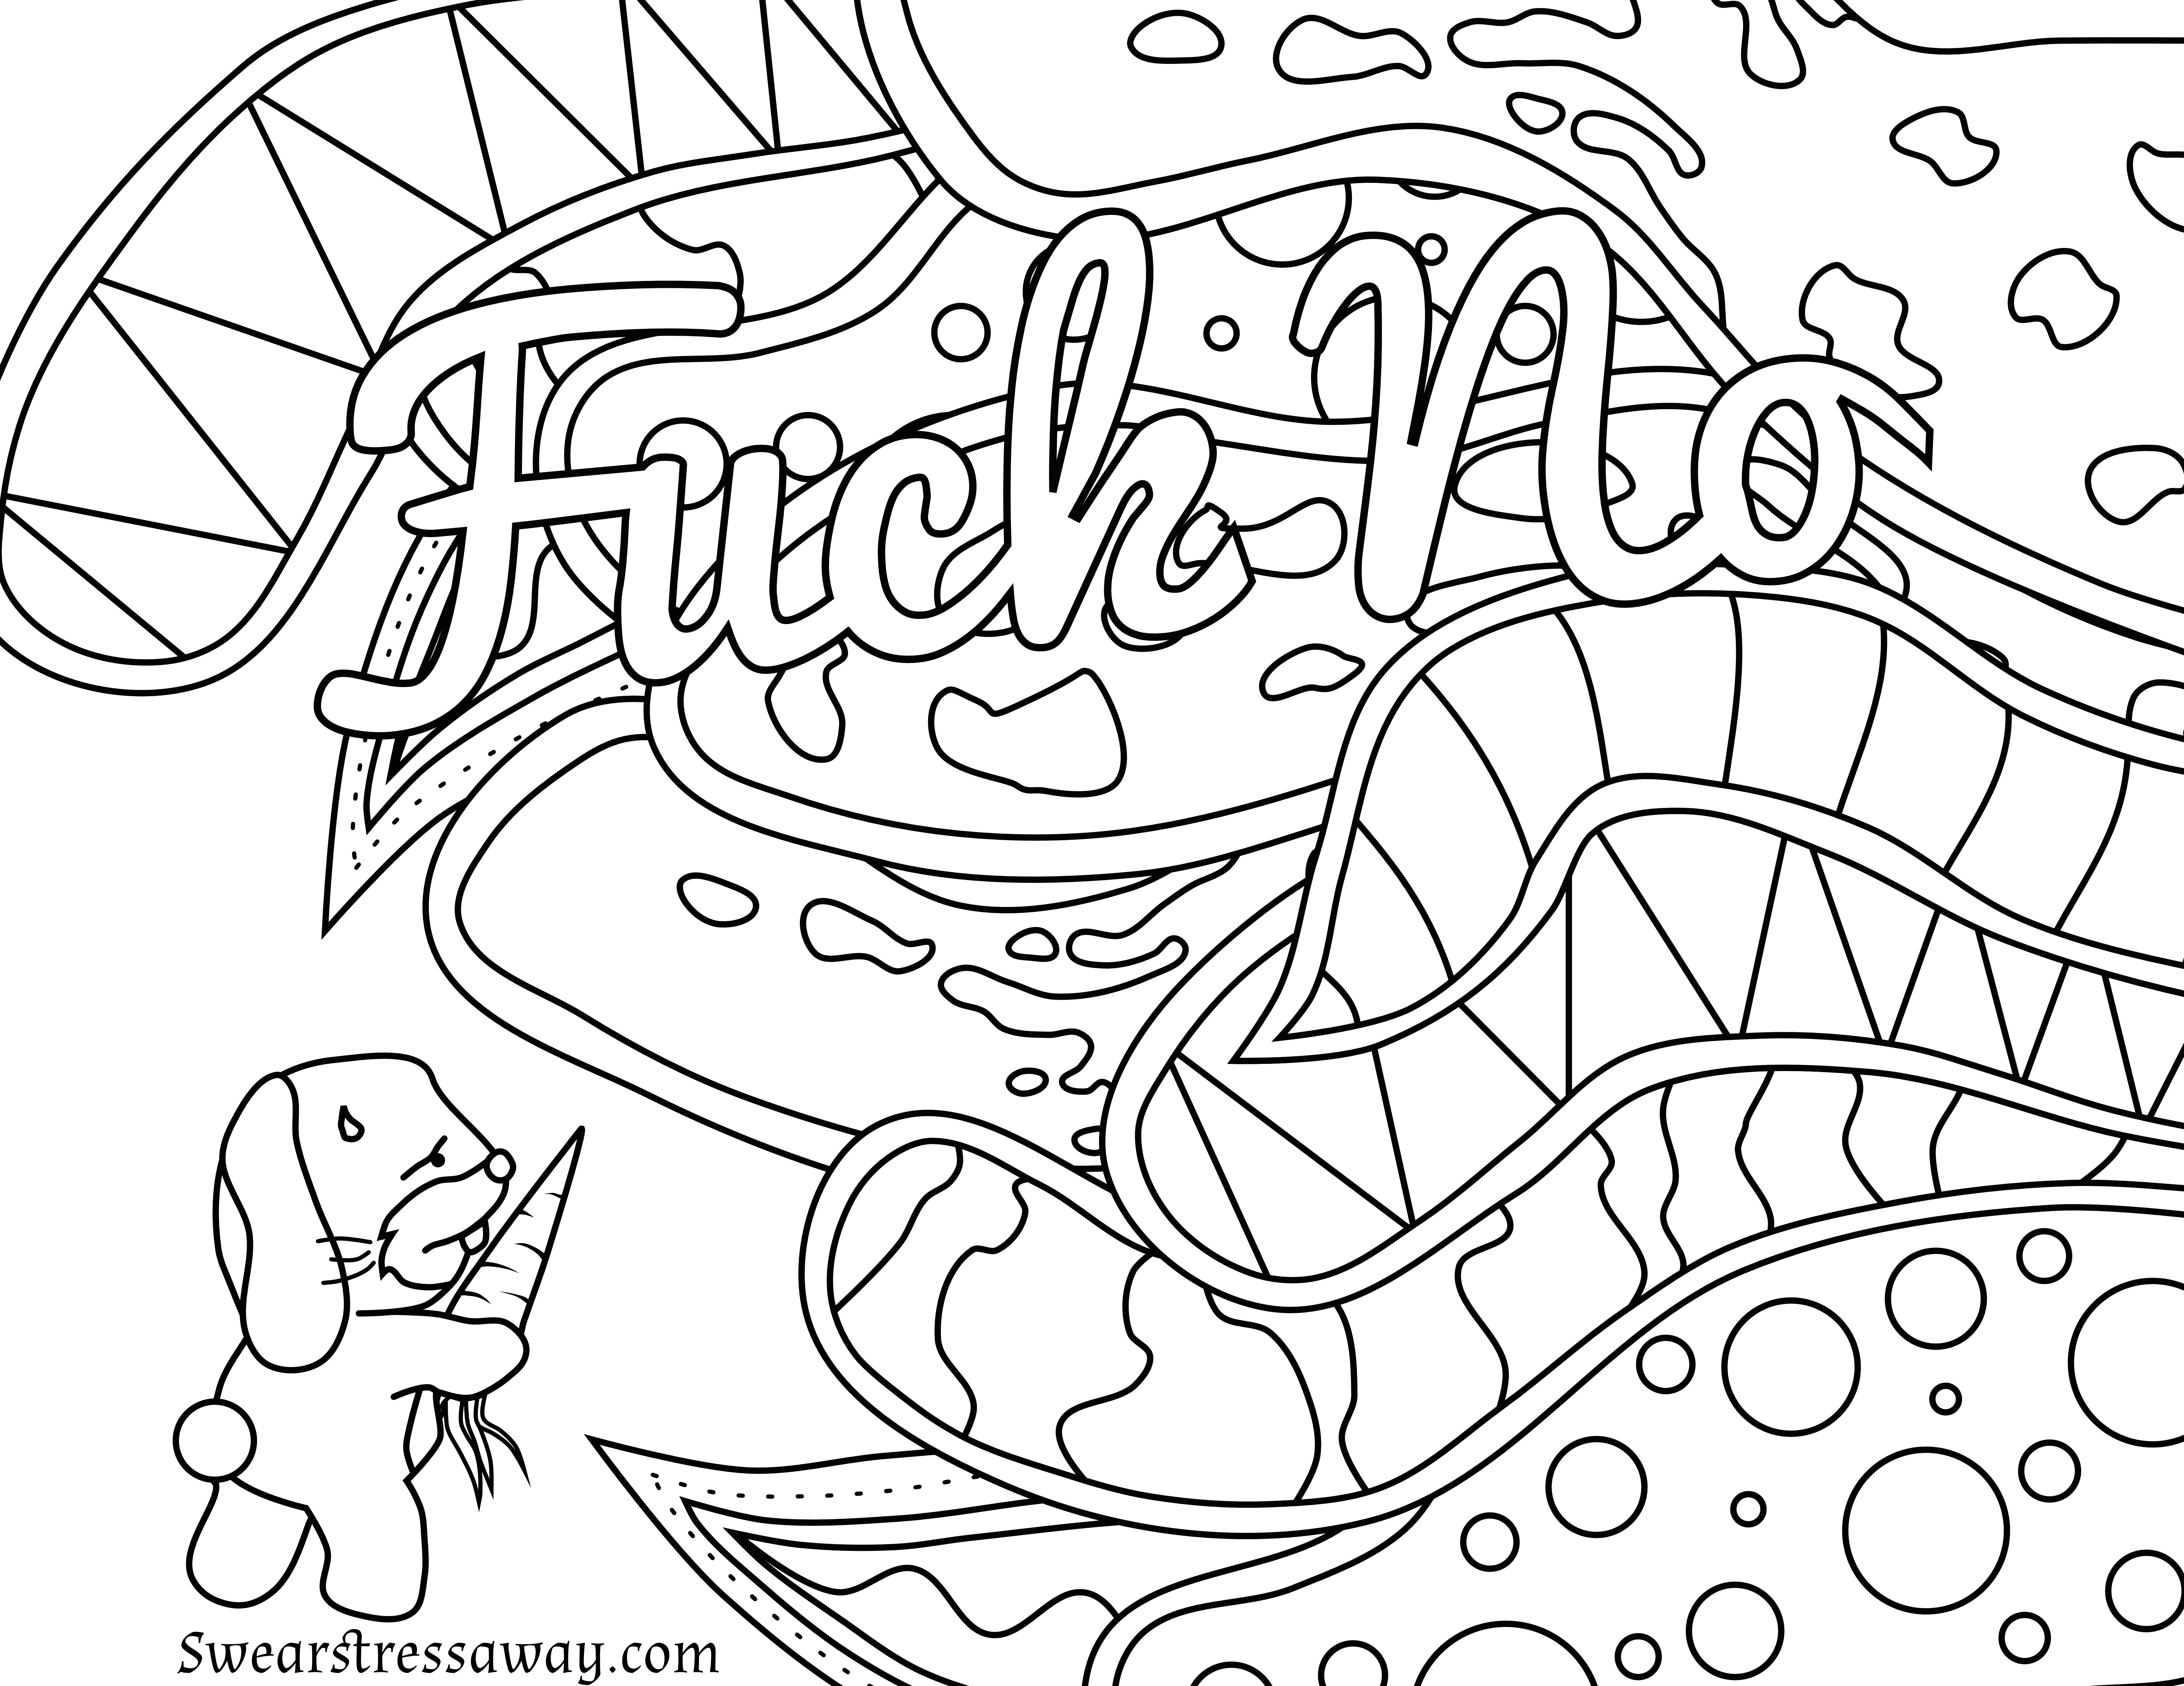 Bad word coloring pages - Free Printable Coloring Page Fuck No Swear Word Coloring Page Sweary Coloring Page